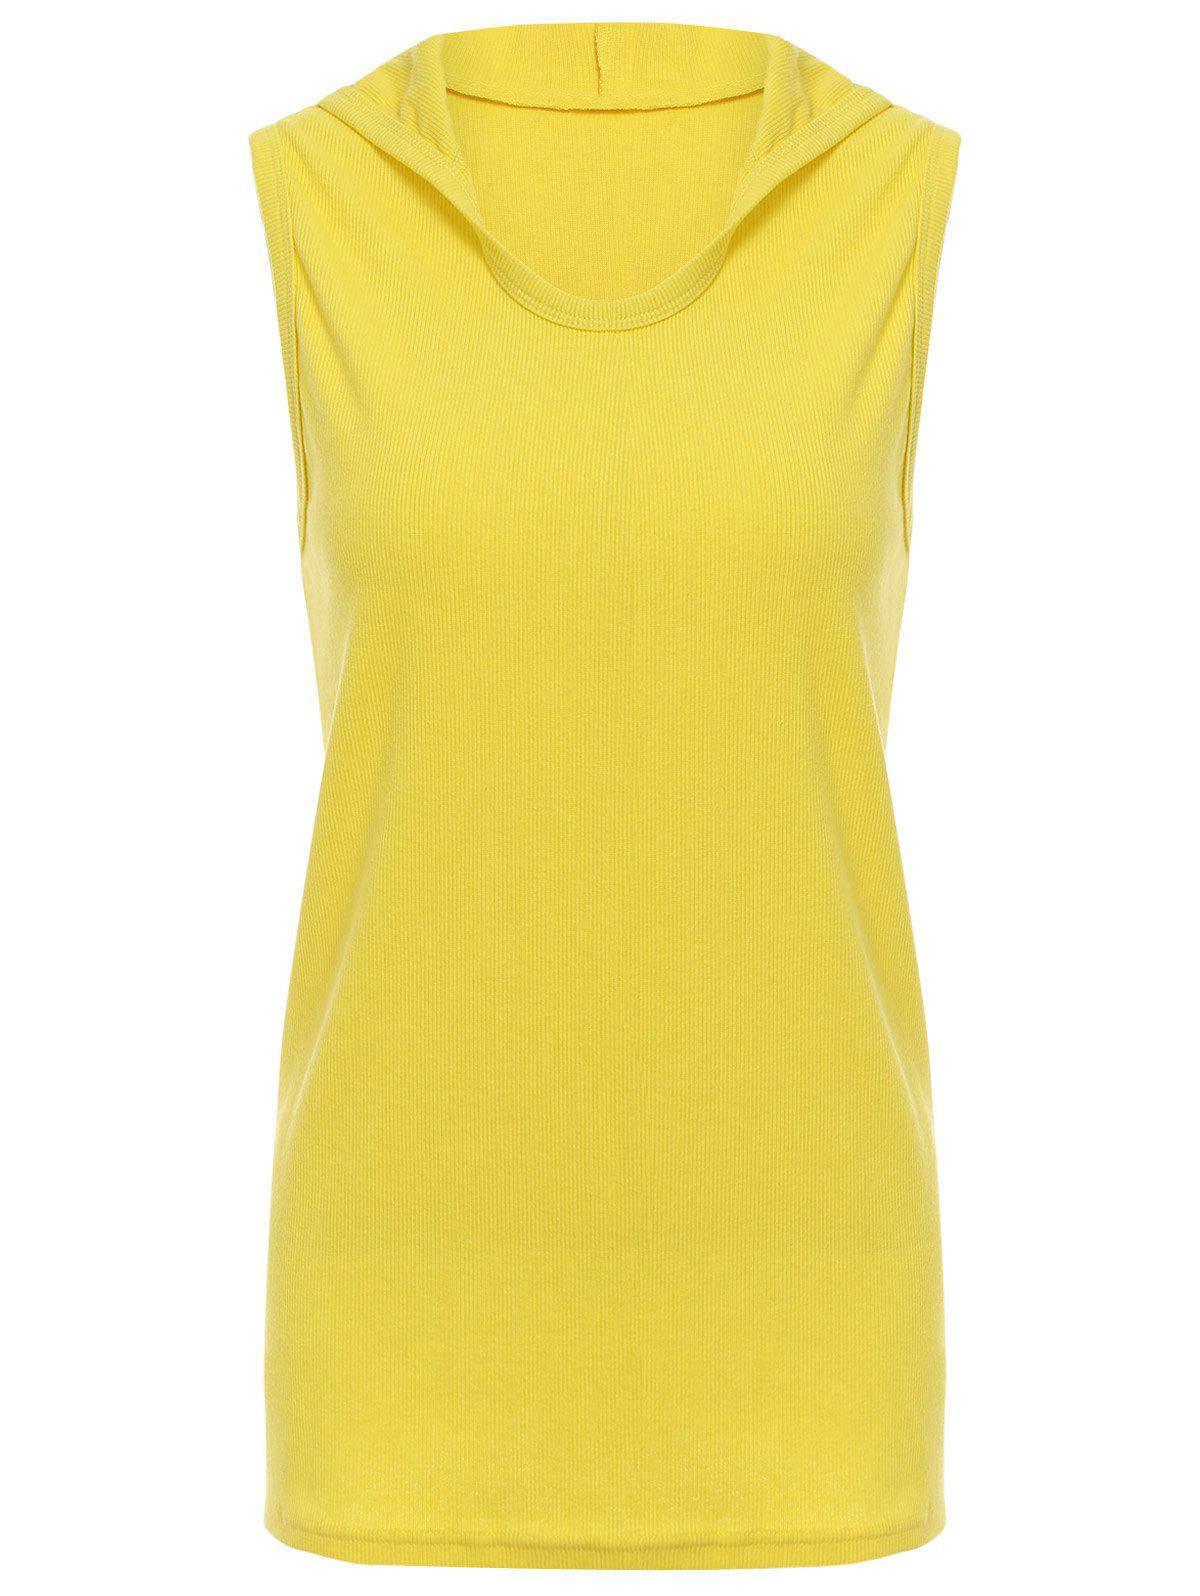 Trendy Hooded Solid Color Sleeveless Men's Tank Top - YELLOW 3XL